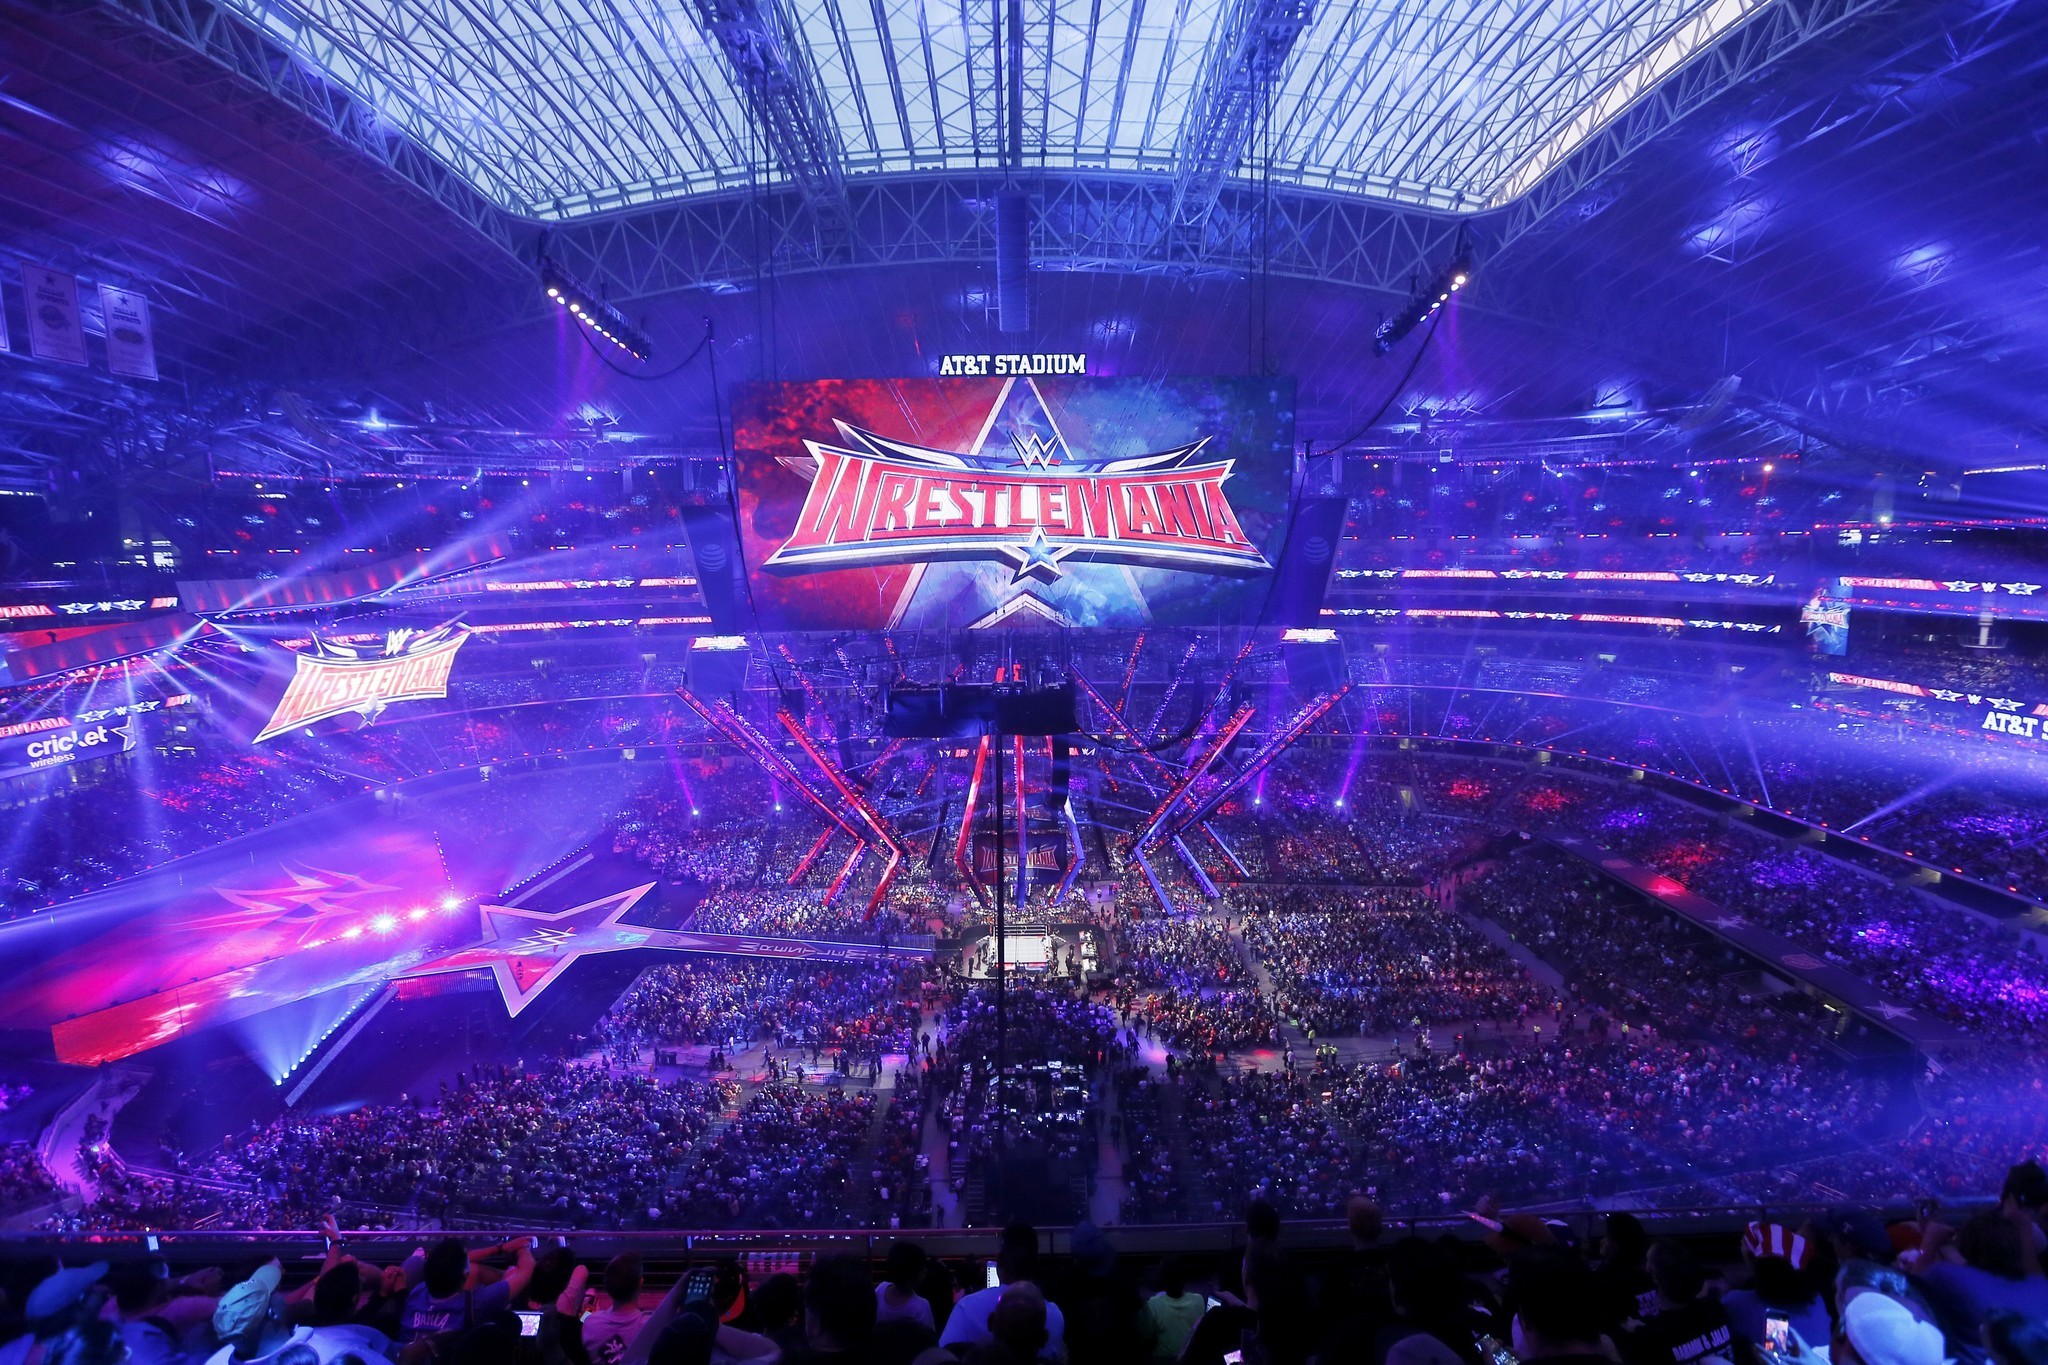 The Undertaker Hd Wallpaper Wrestlemania Will Return To New Orleans In 2018